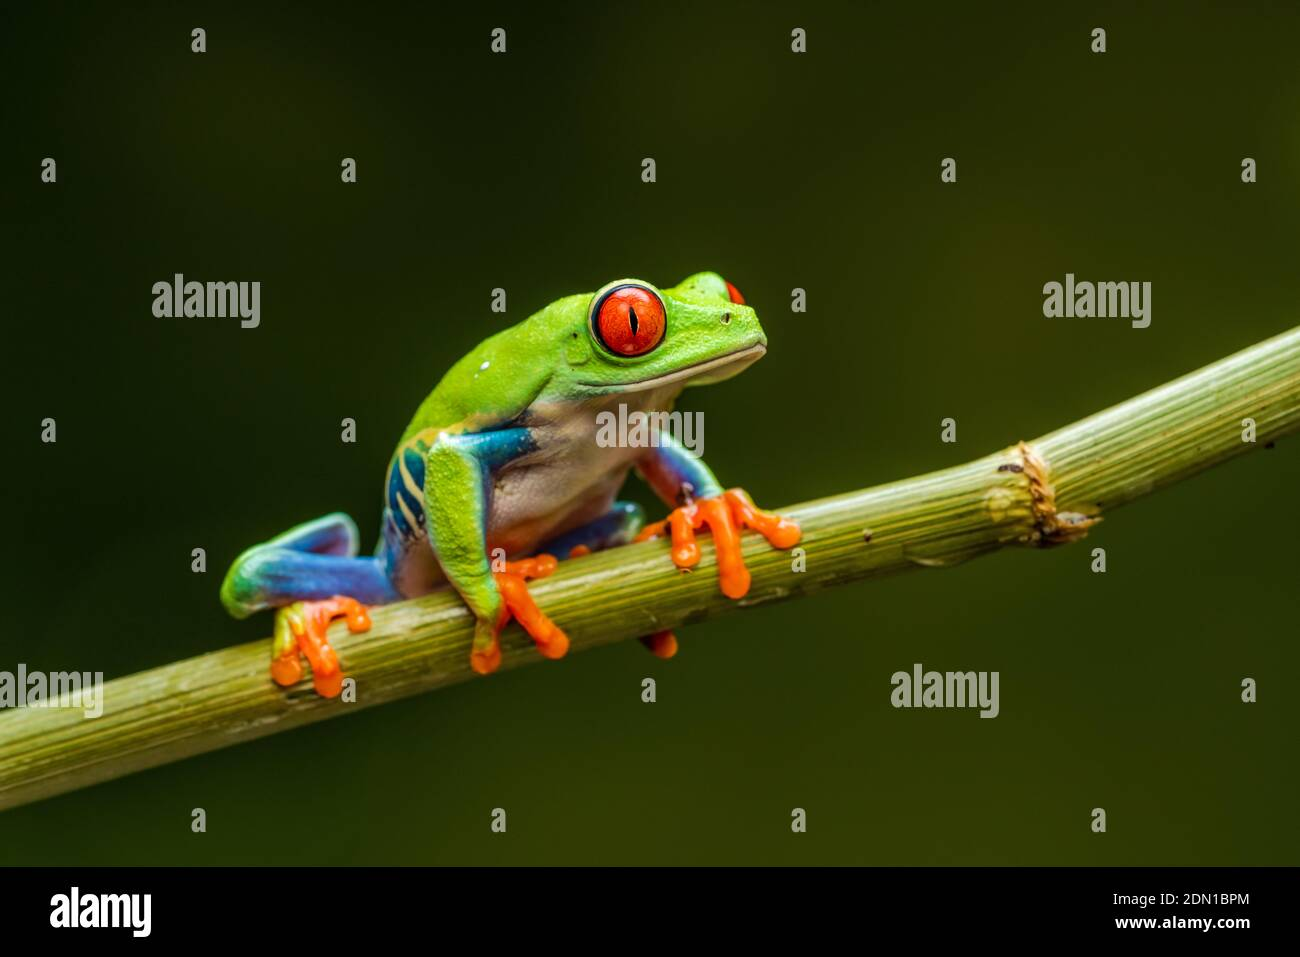 Red-eyed tree frog (Agalychnis callidryas) - closeup with selective focus. Stock Photo